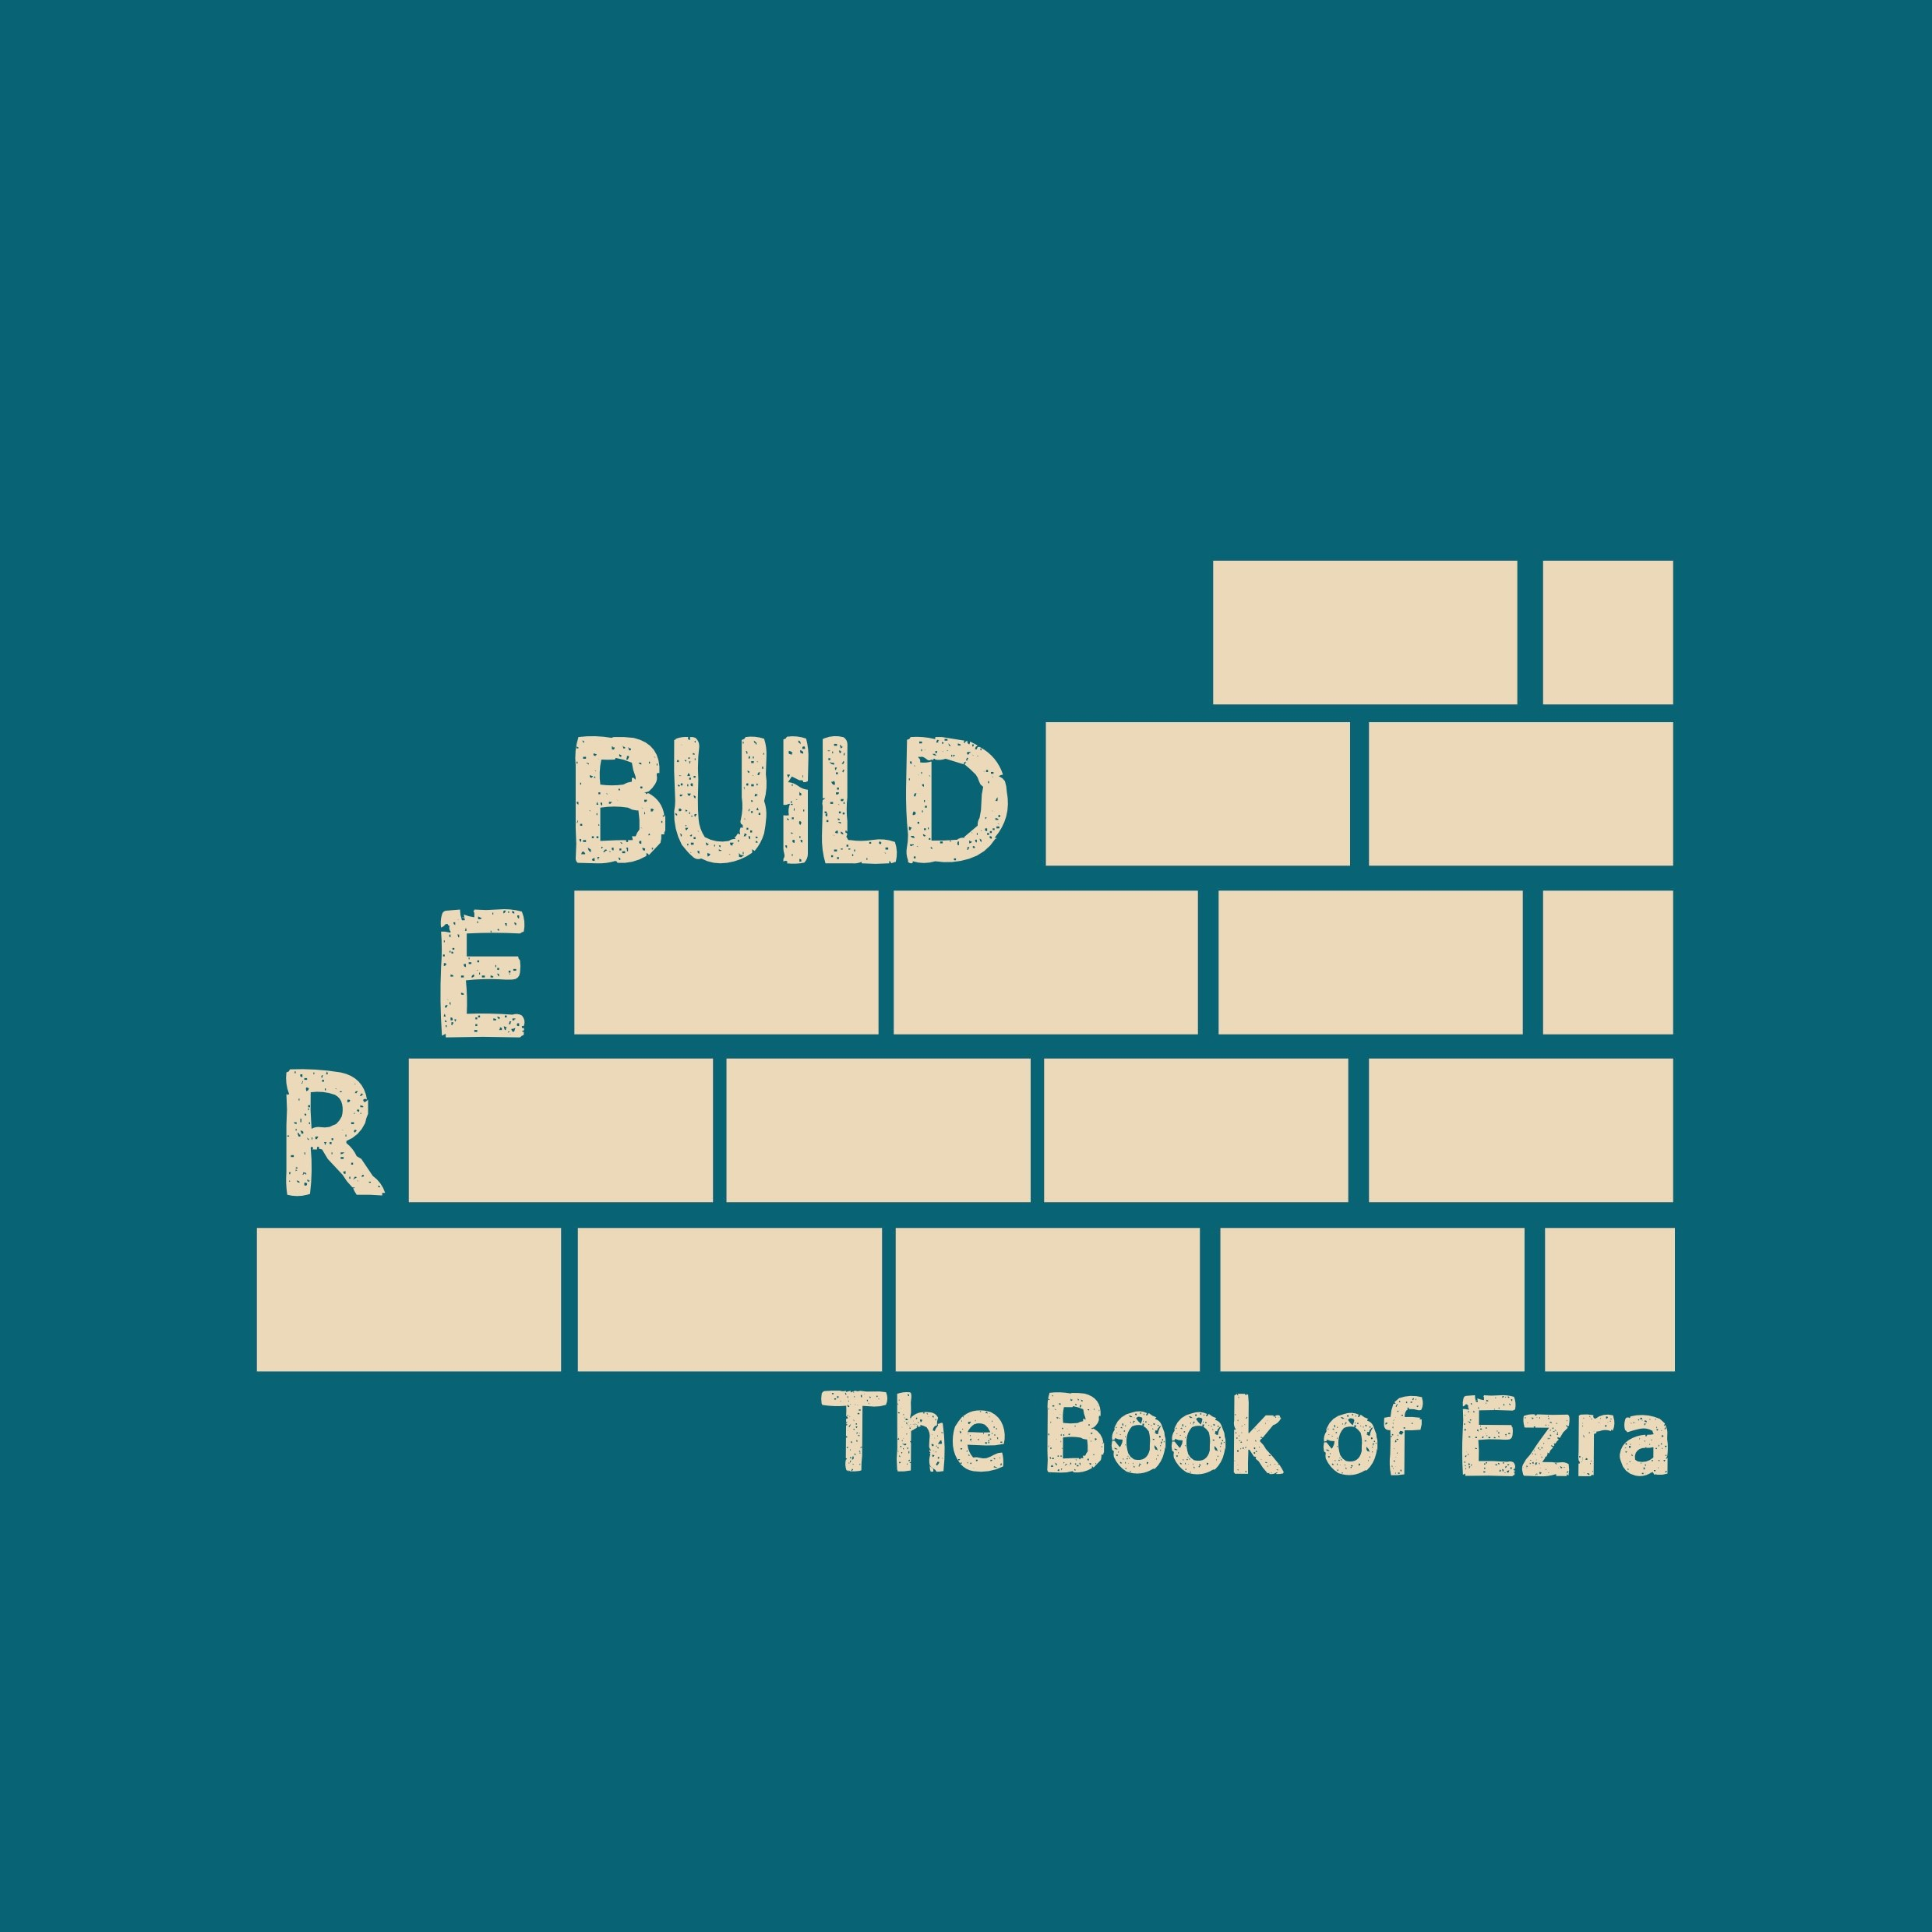 REBUILD: The Book of Ezra